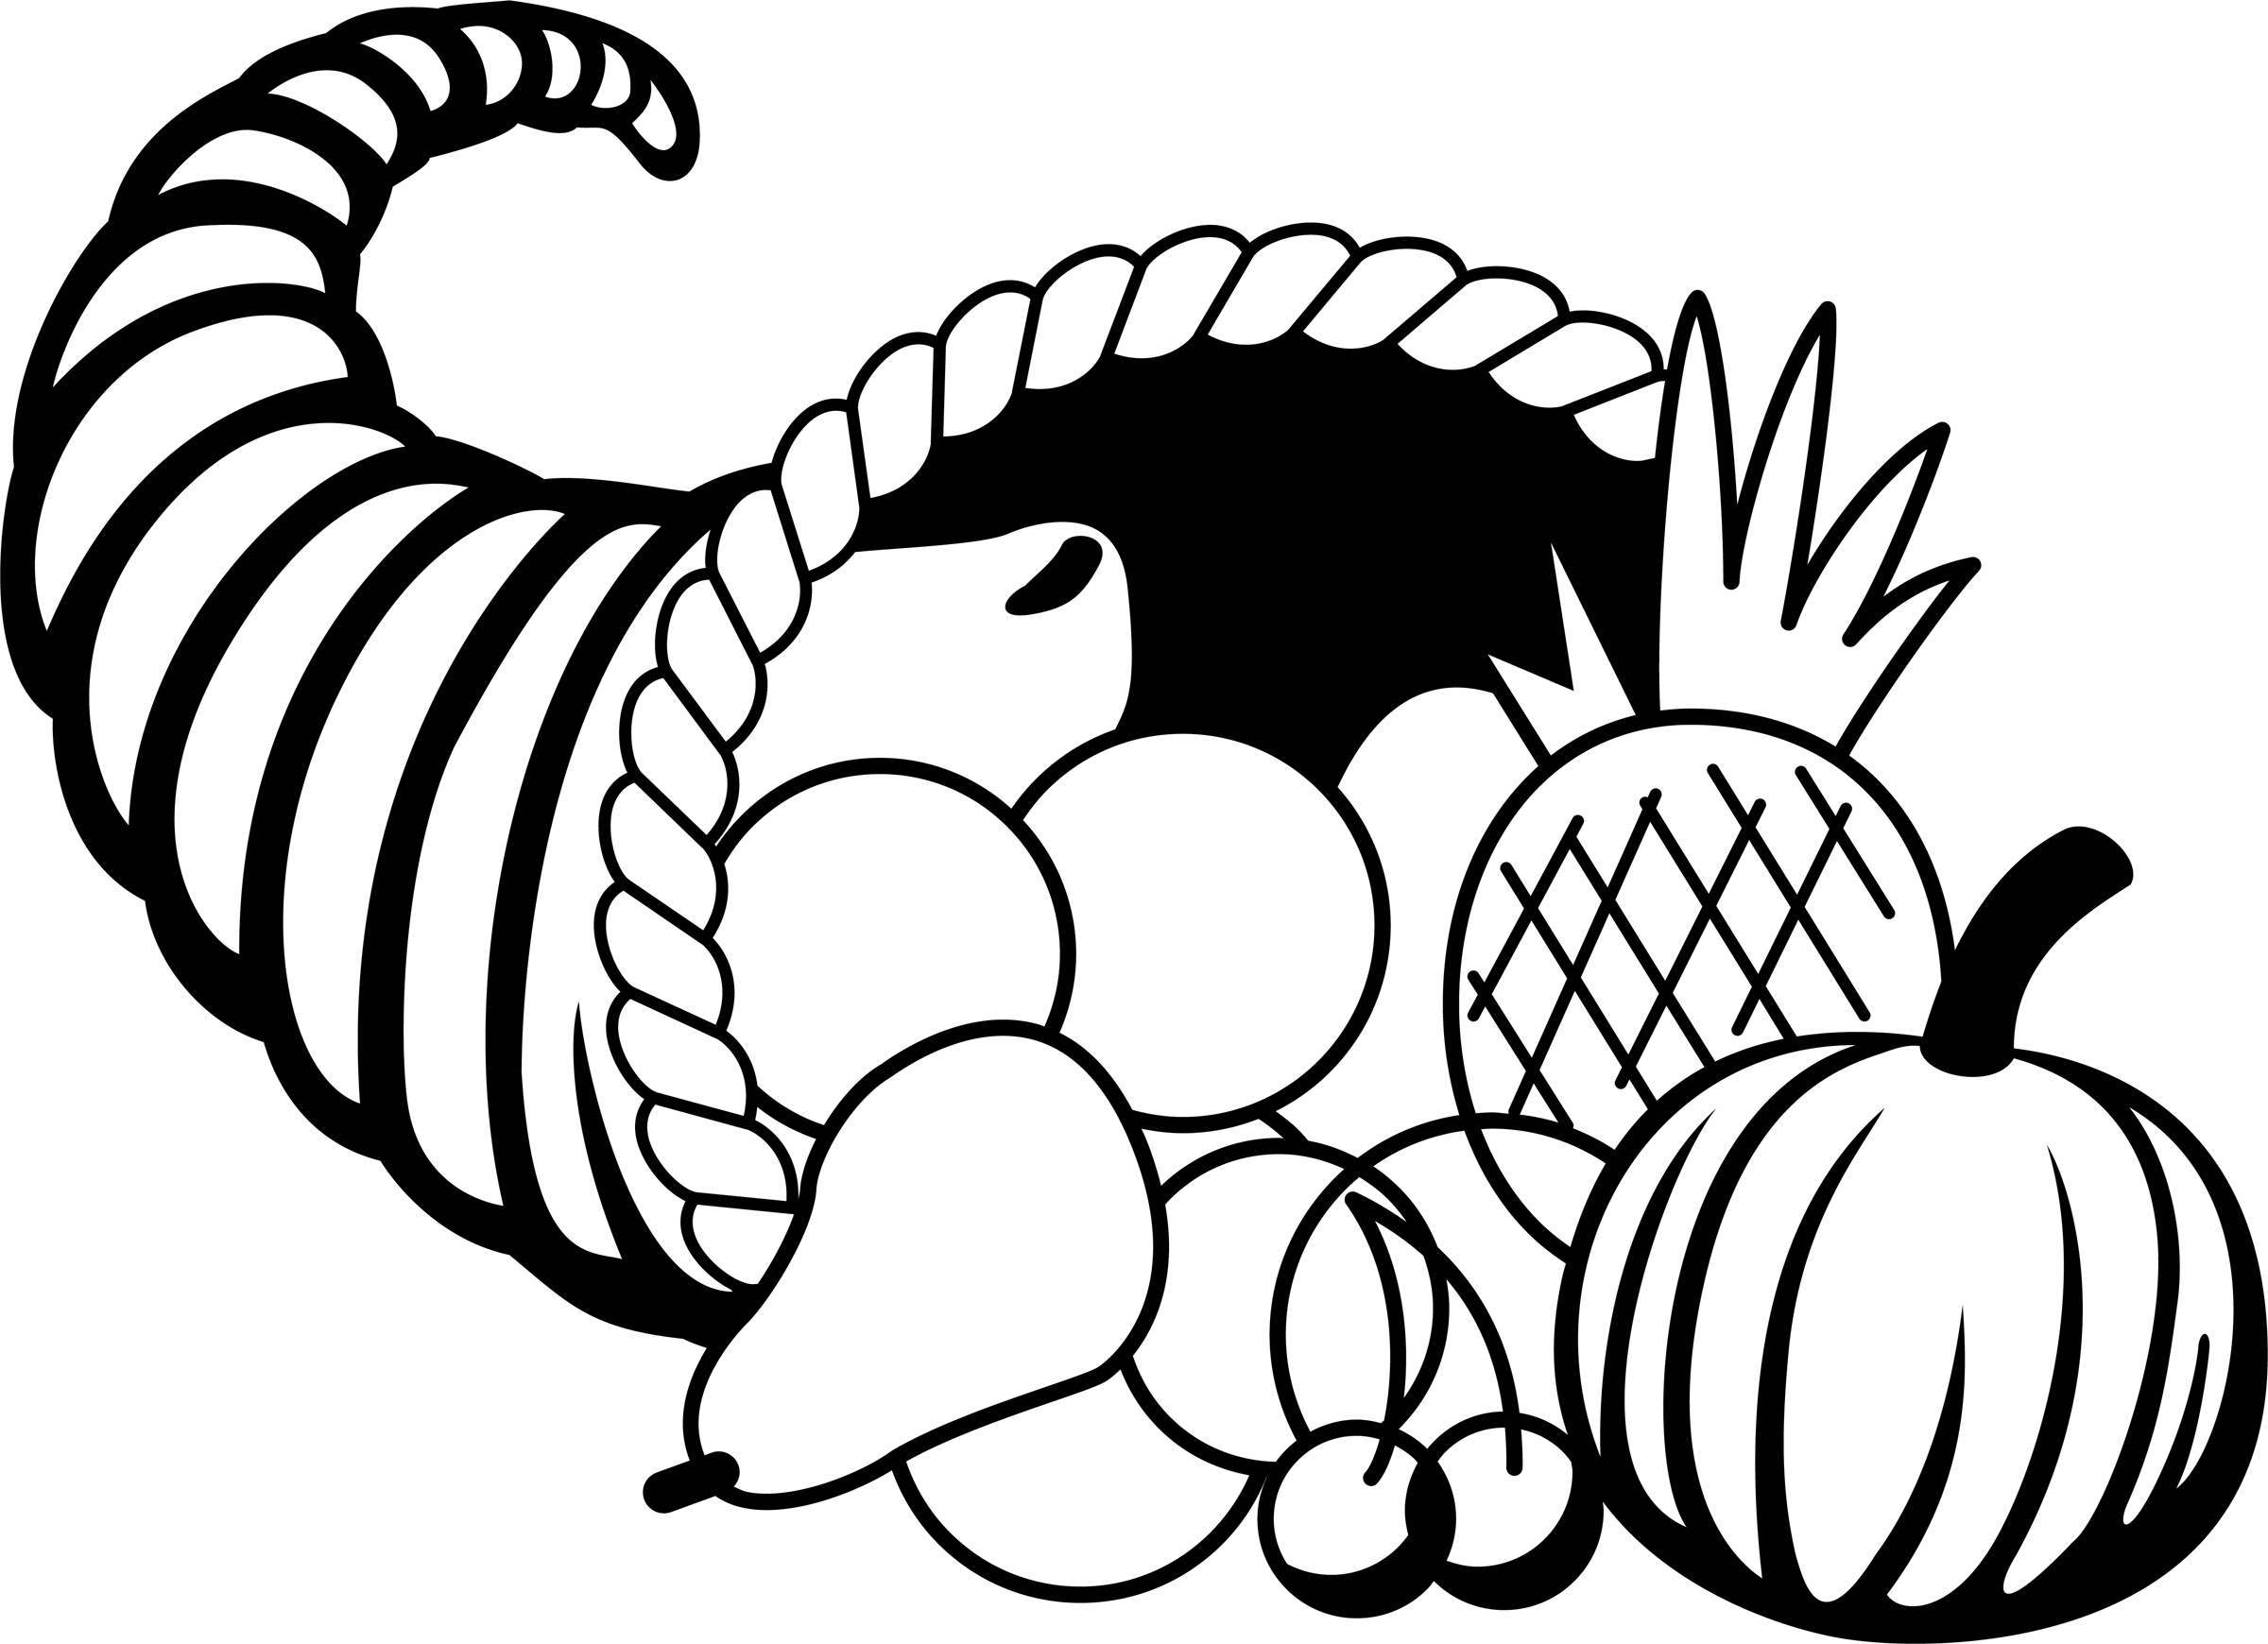 Cornucopia Clip Art - Thanksgiving Clip Art Black And White